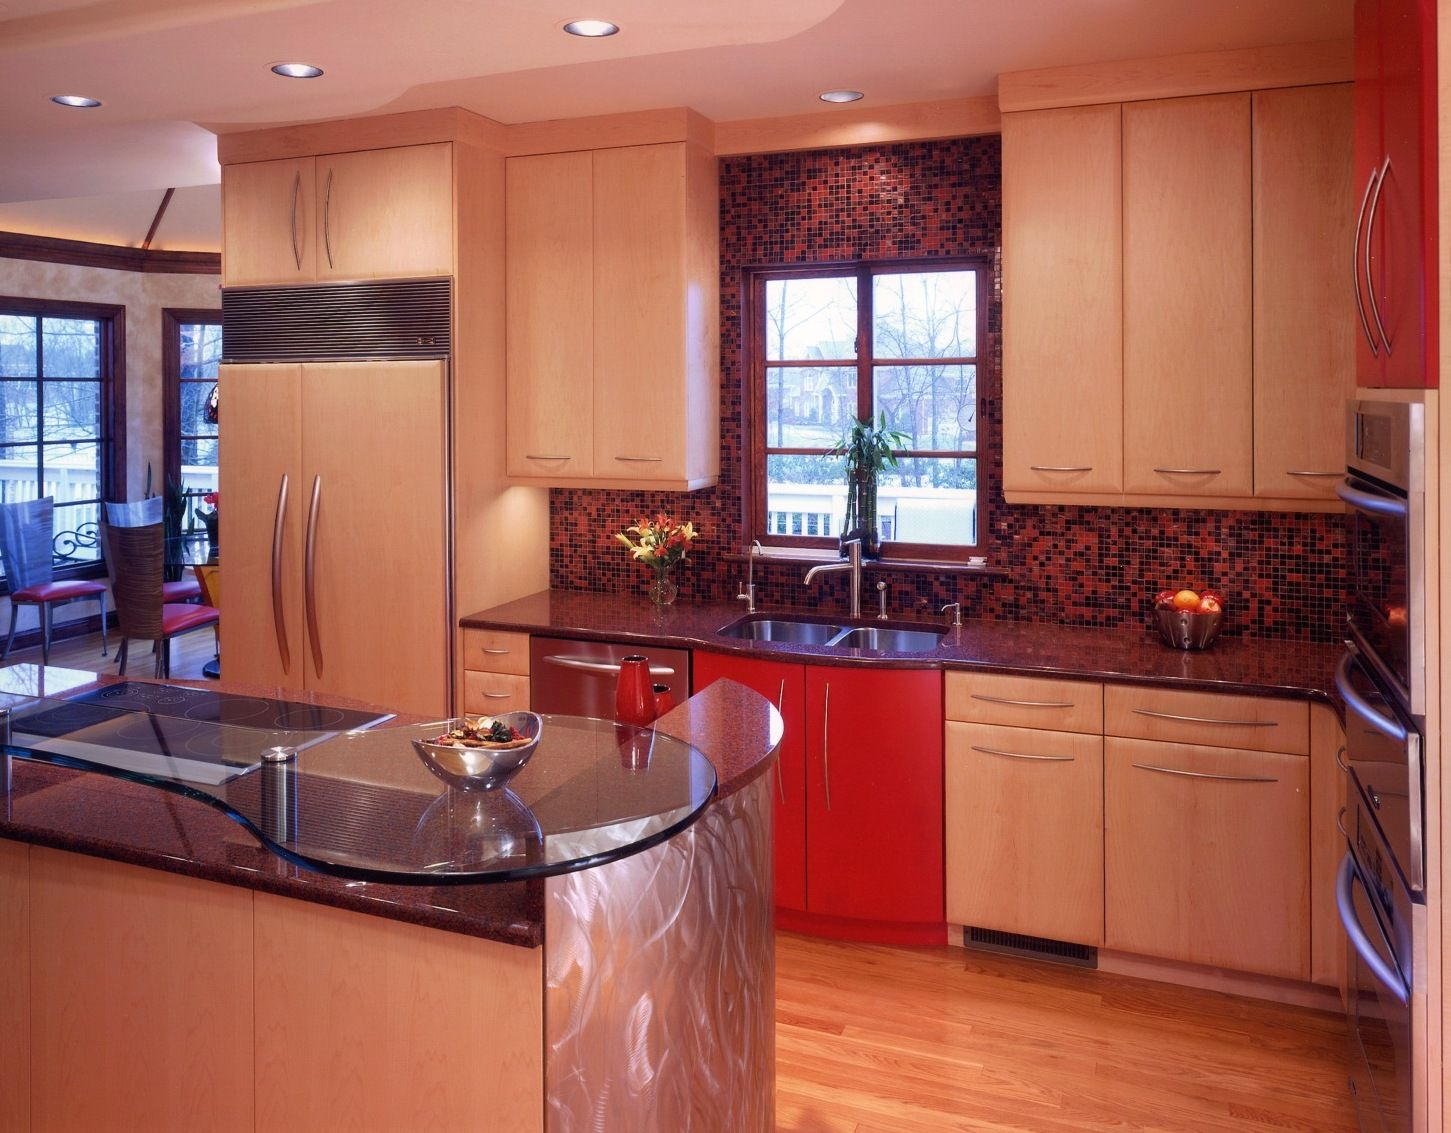 Red- High Gloss Accents | Kitchen design gallery, Kitchen ...